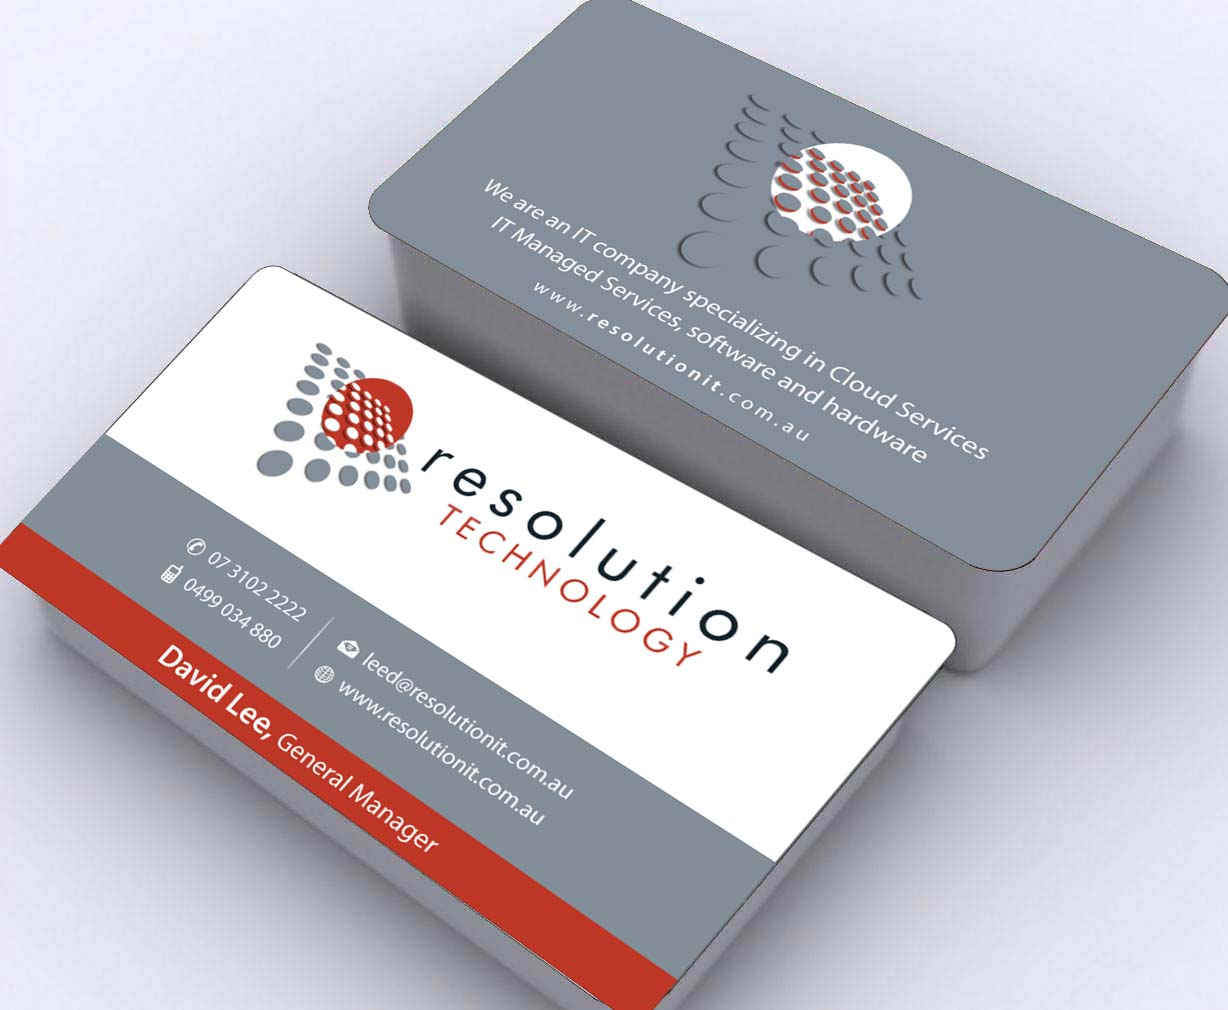 Modern professional software business card design for resolution business card design by sbss for resolution technology design 2936609 reheart Gallery